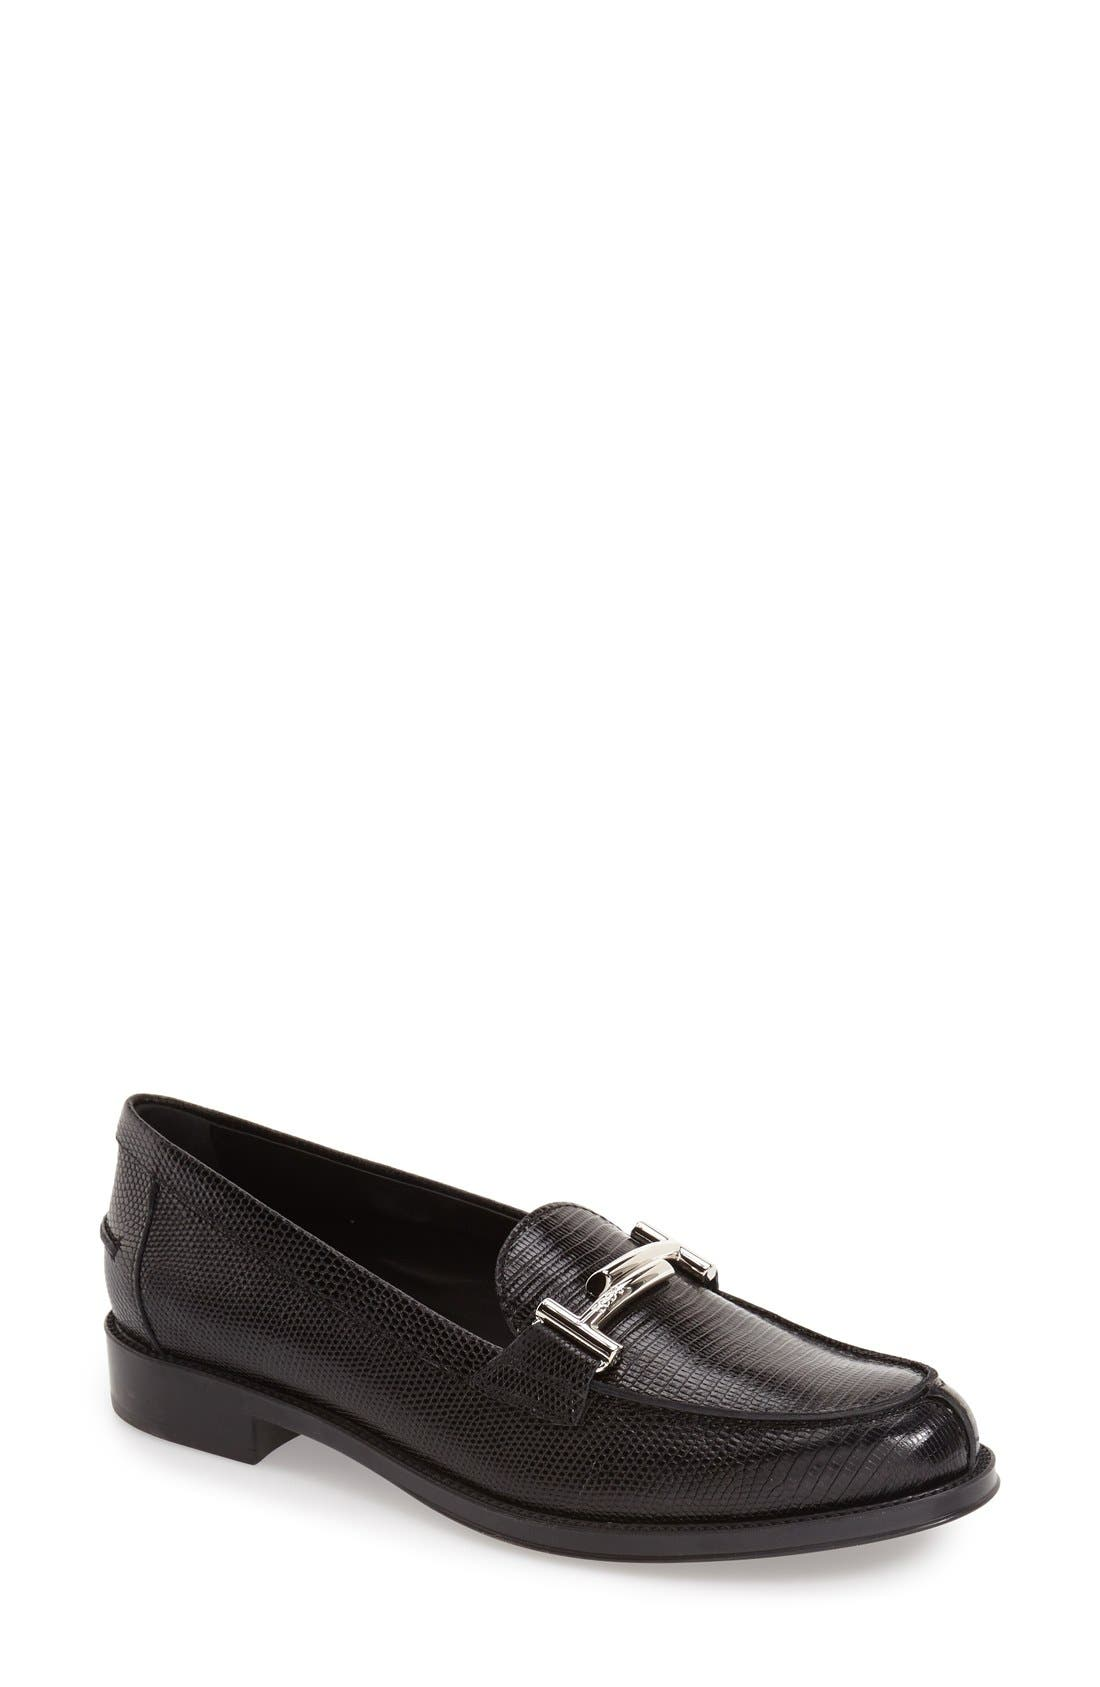 'Double T' Loafer,                         Main,                         color, 001